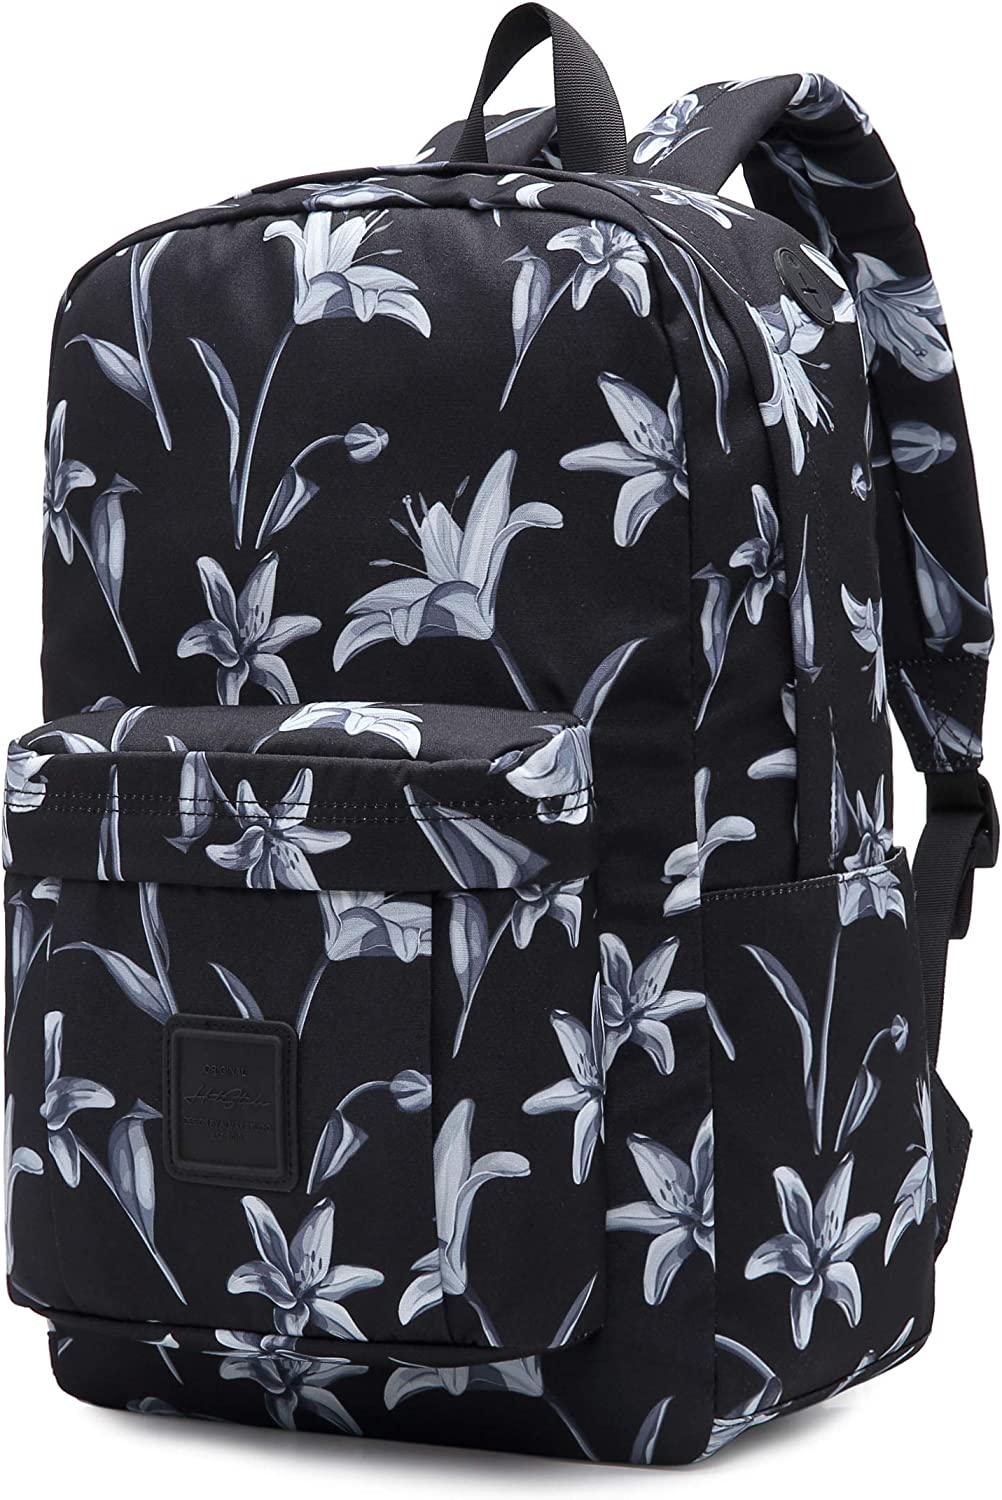 599s Floral School Backpack For Teen Girls, Water resistance & Durable Bookbag Cute for College, Lily blossom, Black